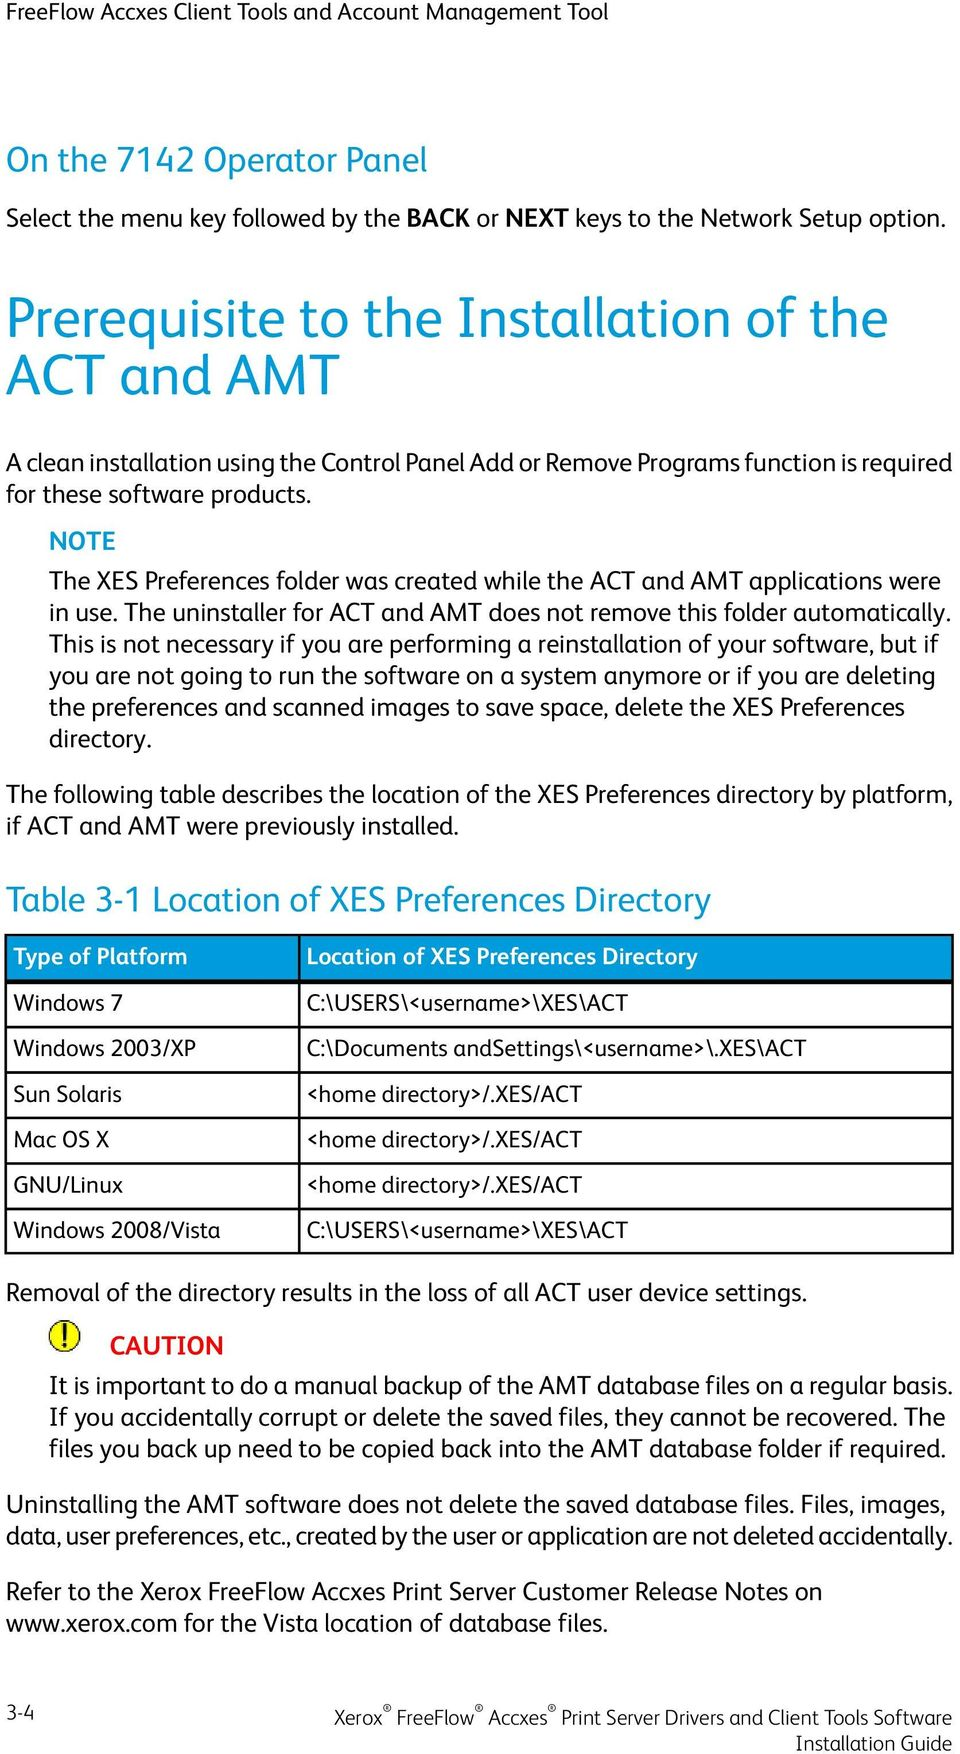 The XES Preferences folder was created while the ACT and AMT applications were in use. The uninstaller for ACT and AMT does not remove this folder automatically.